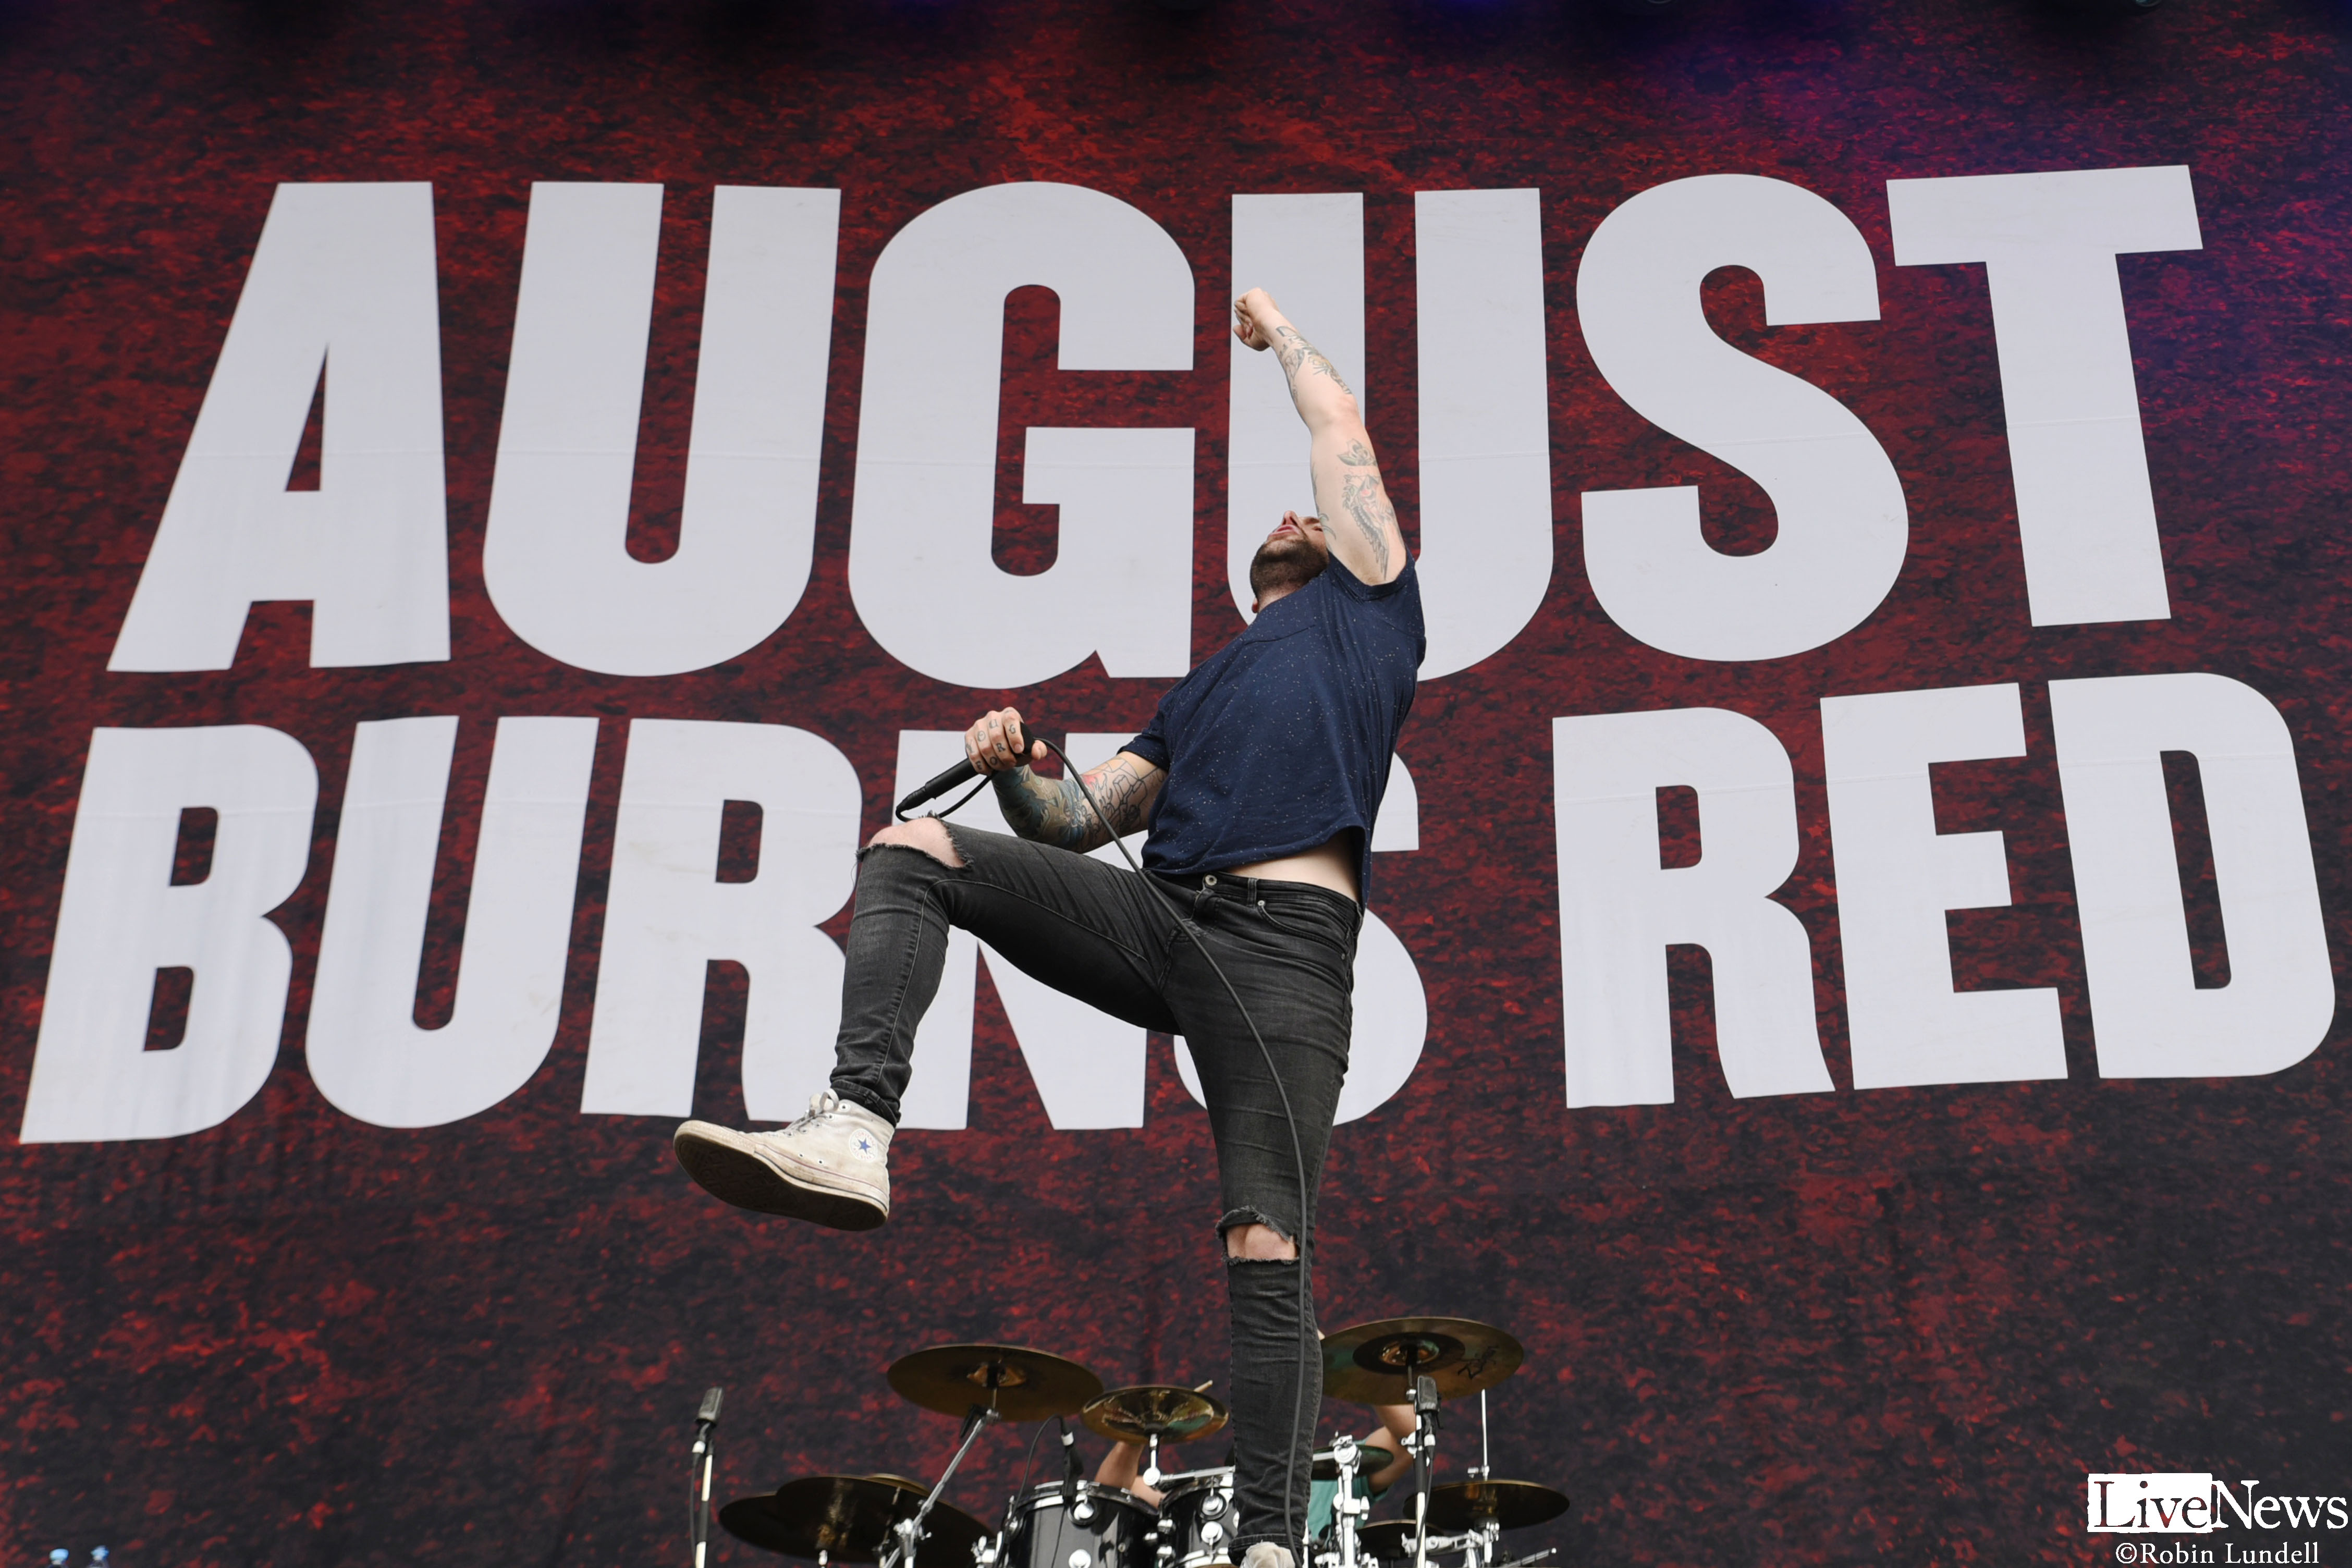 August_Burns_Red_1